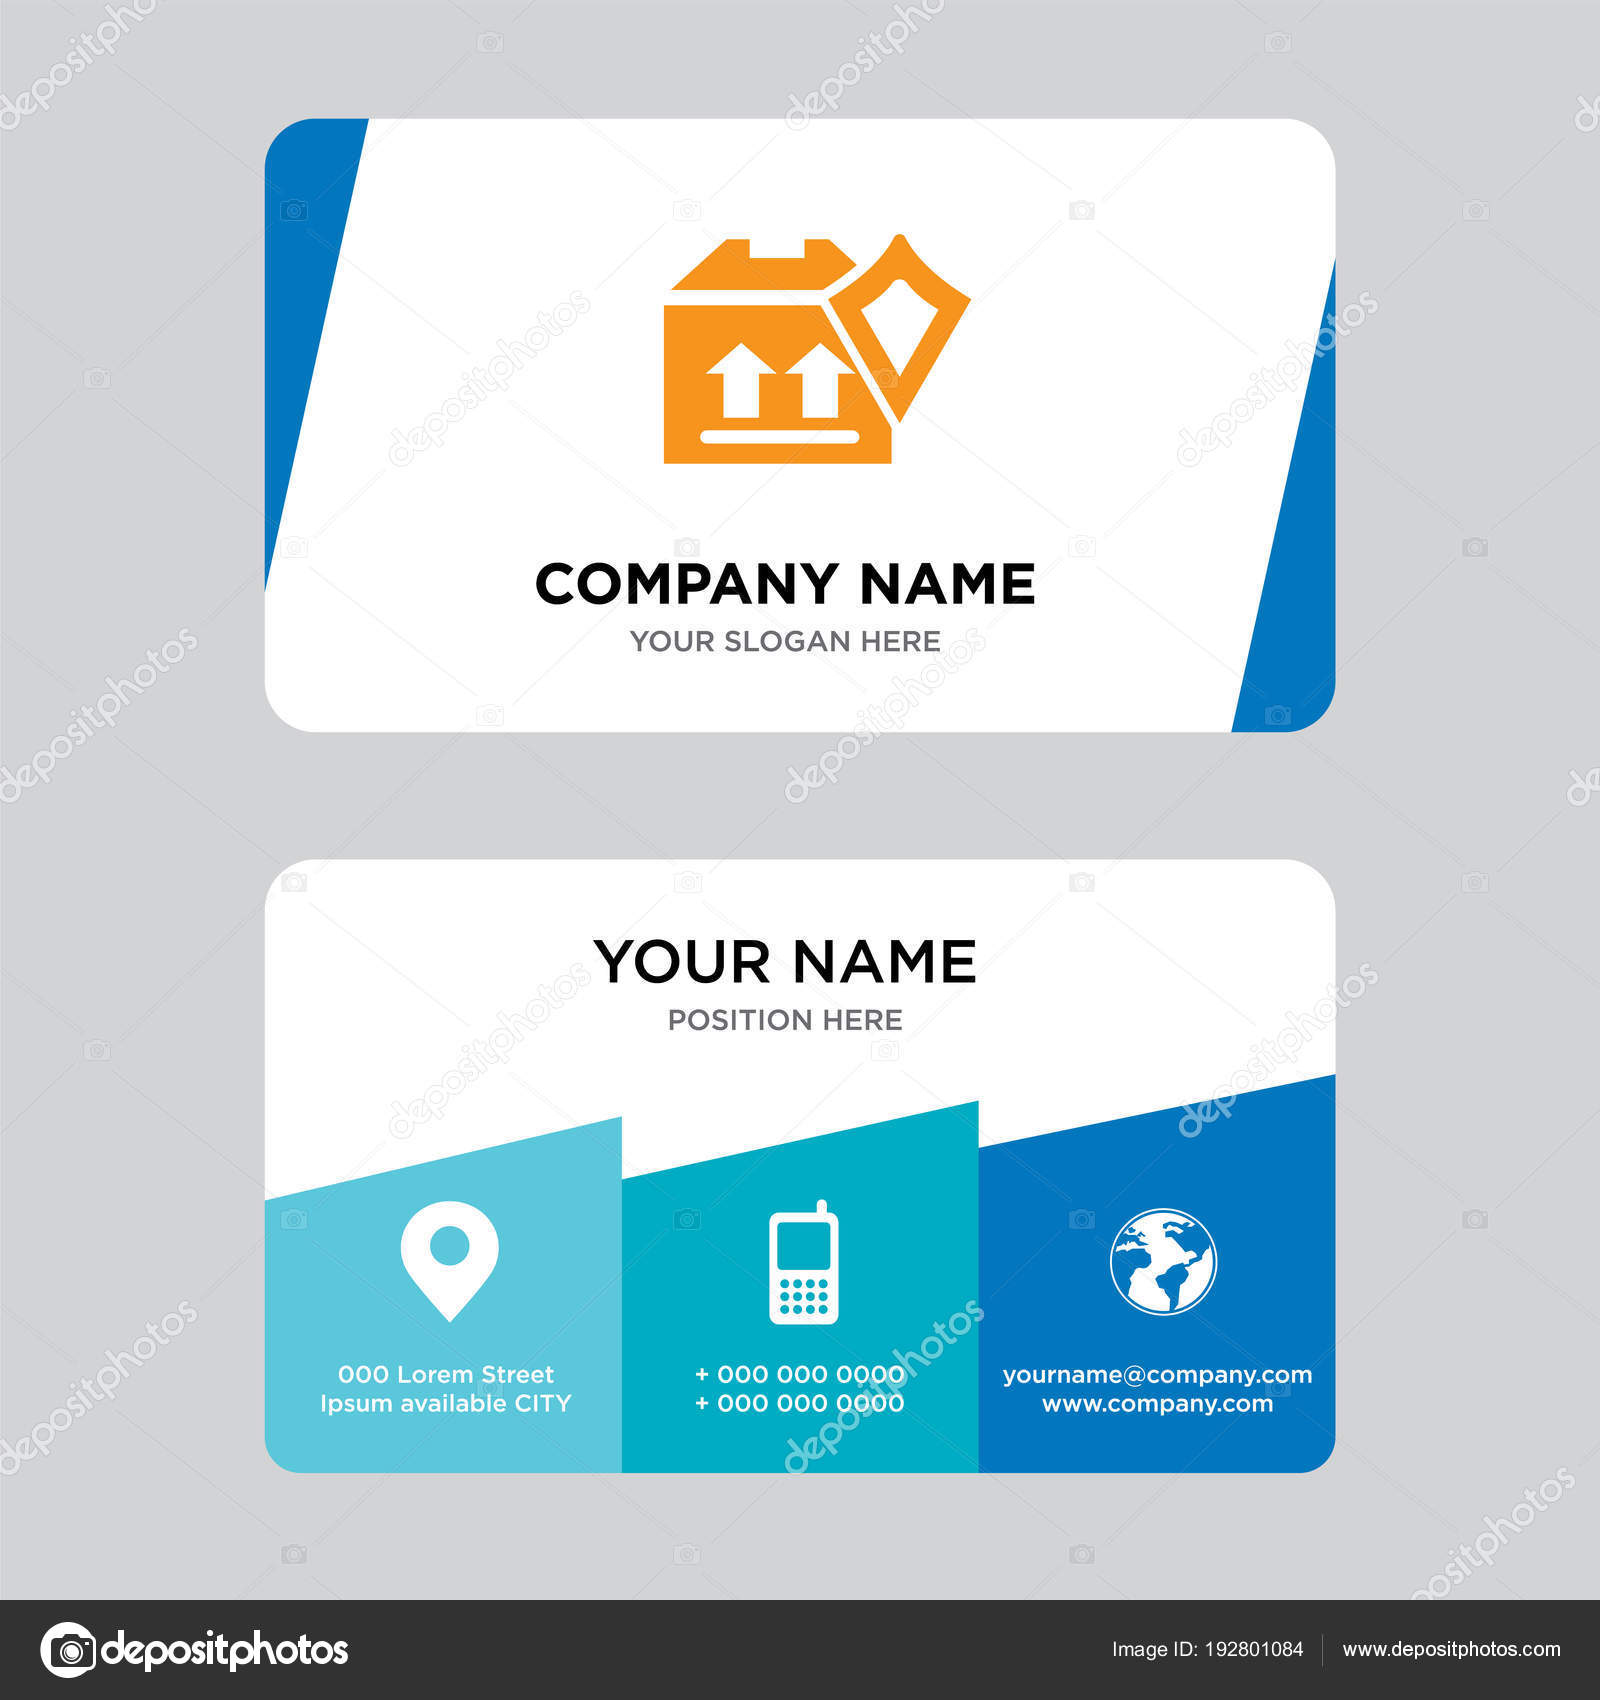 Delivery pack security business card design template — Stock Vector ...